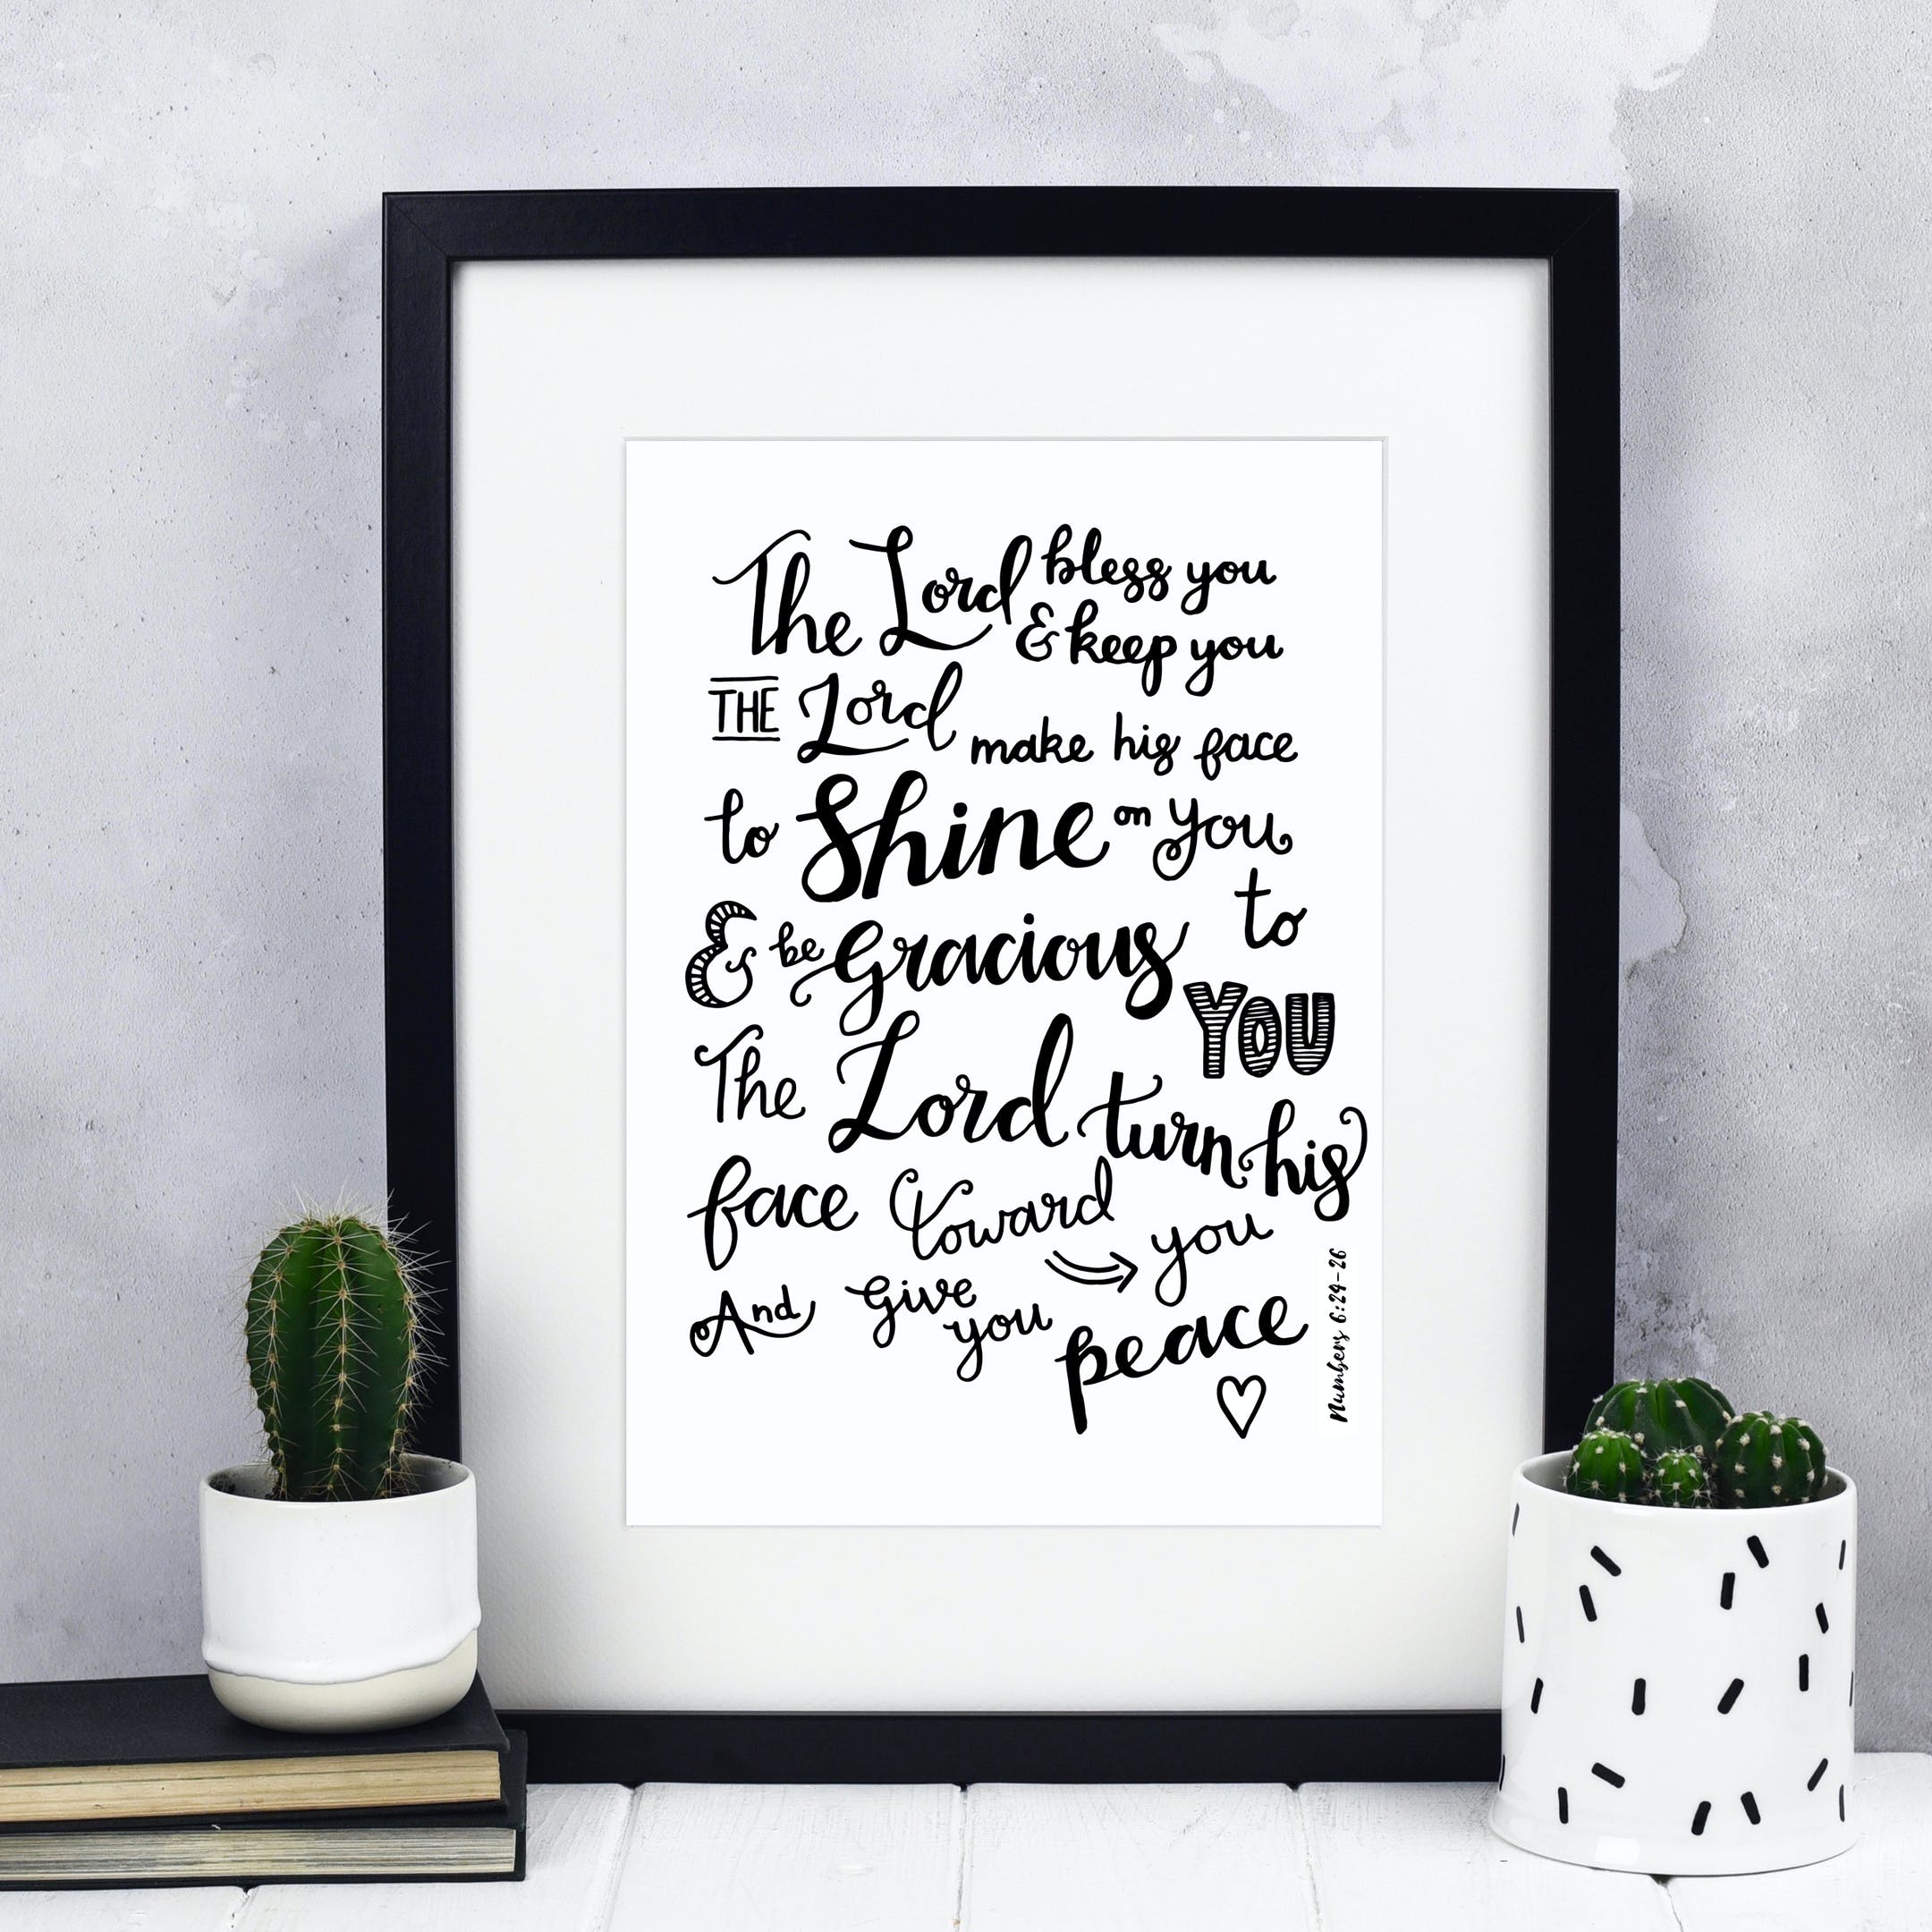 Black Izzy and Pop Print - The Lord Bless You And Keep You - Numbers 6:24-26